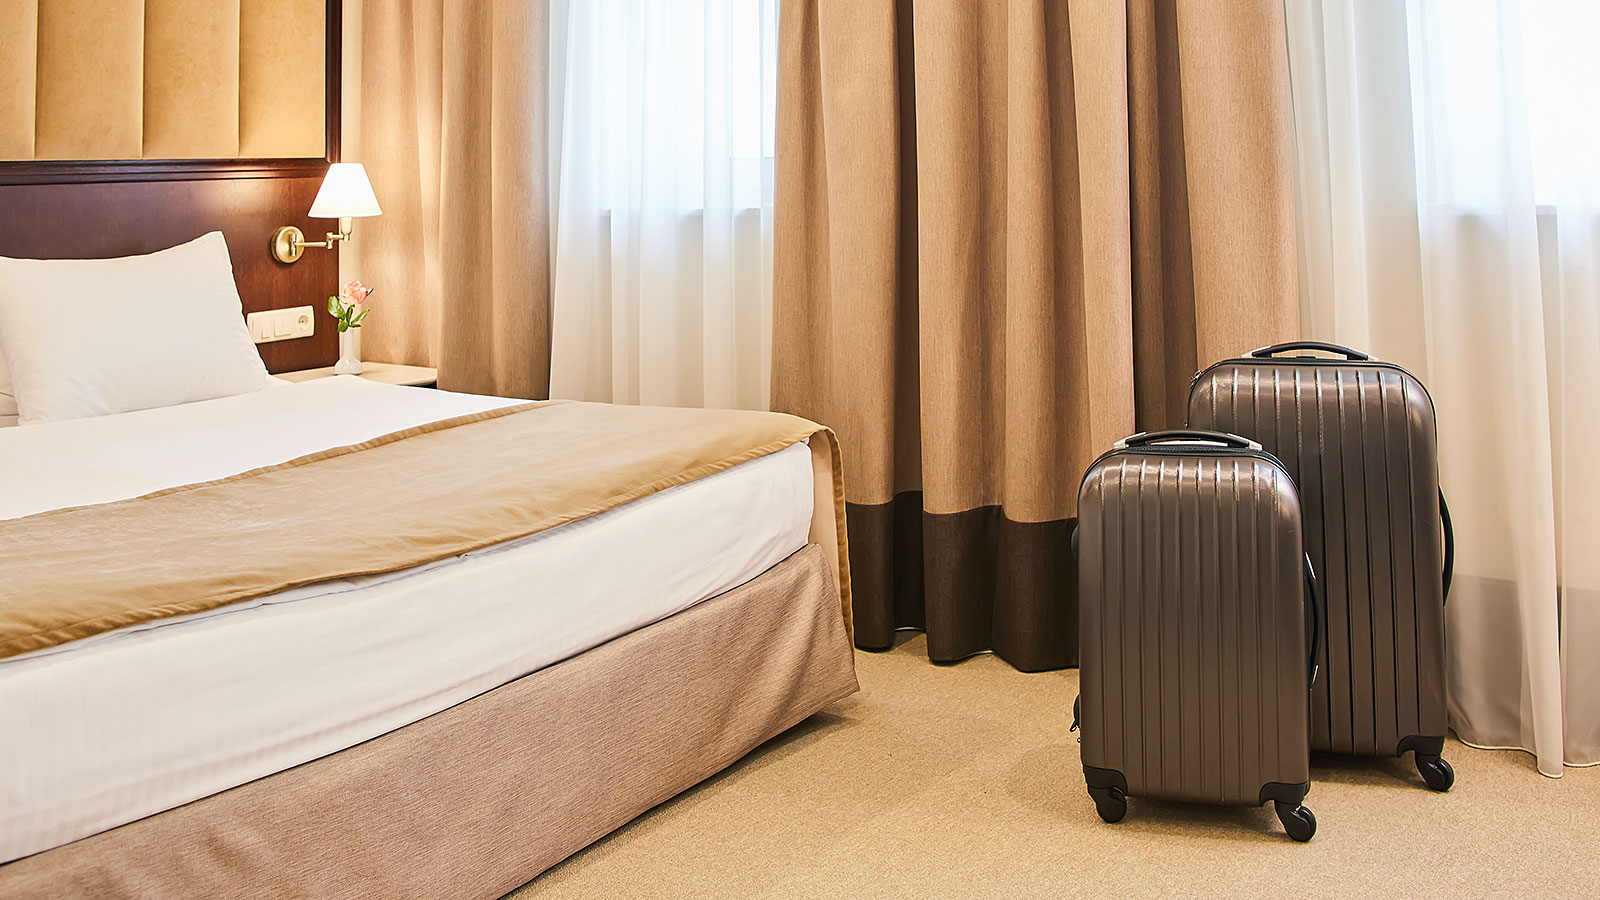 If you don't do this with your luggage when you travel, your trip (and life) may be ruined